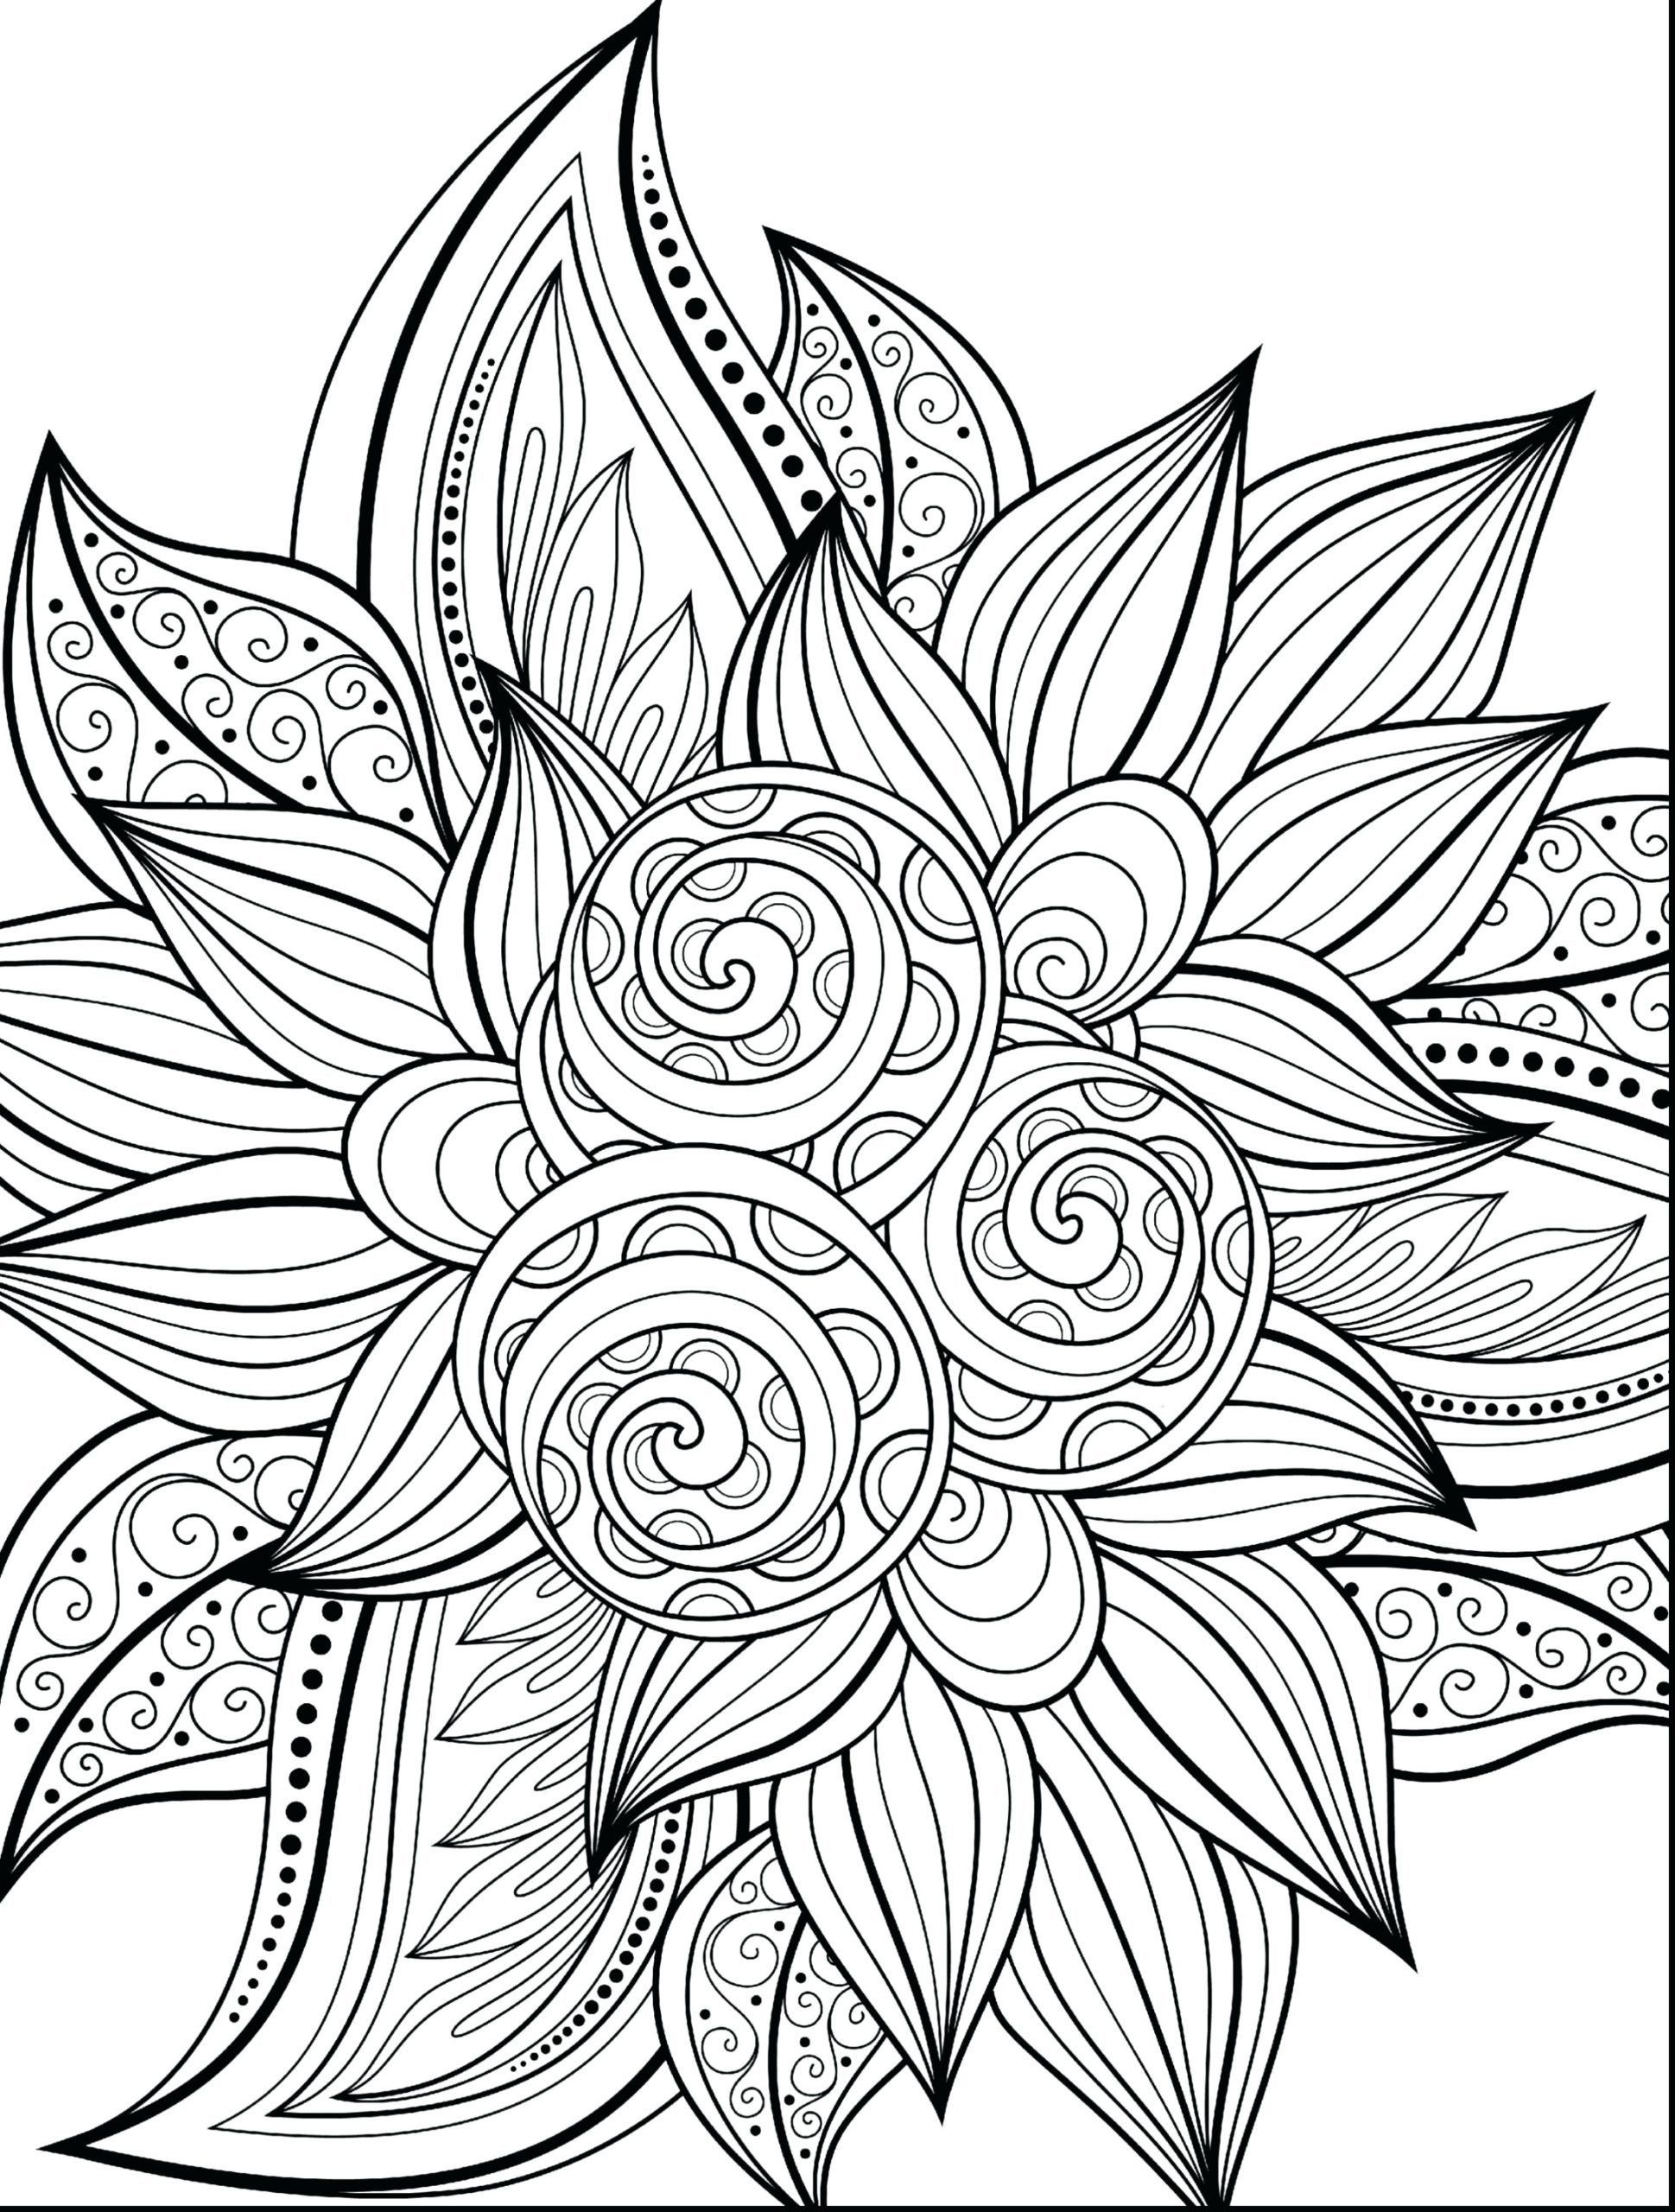 Unique Coloring Books For Adults Amazing Unique Coloring Books Pirations For Adults In 2020 Free Online Coloring Printable Coloring Book Flower Coloring Pages